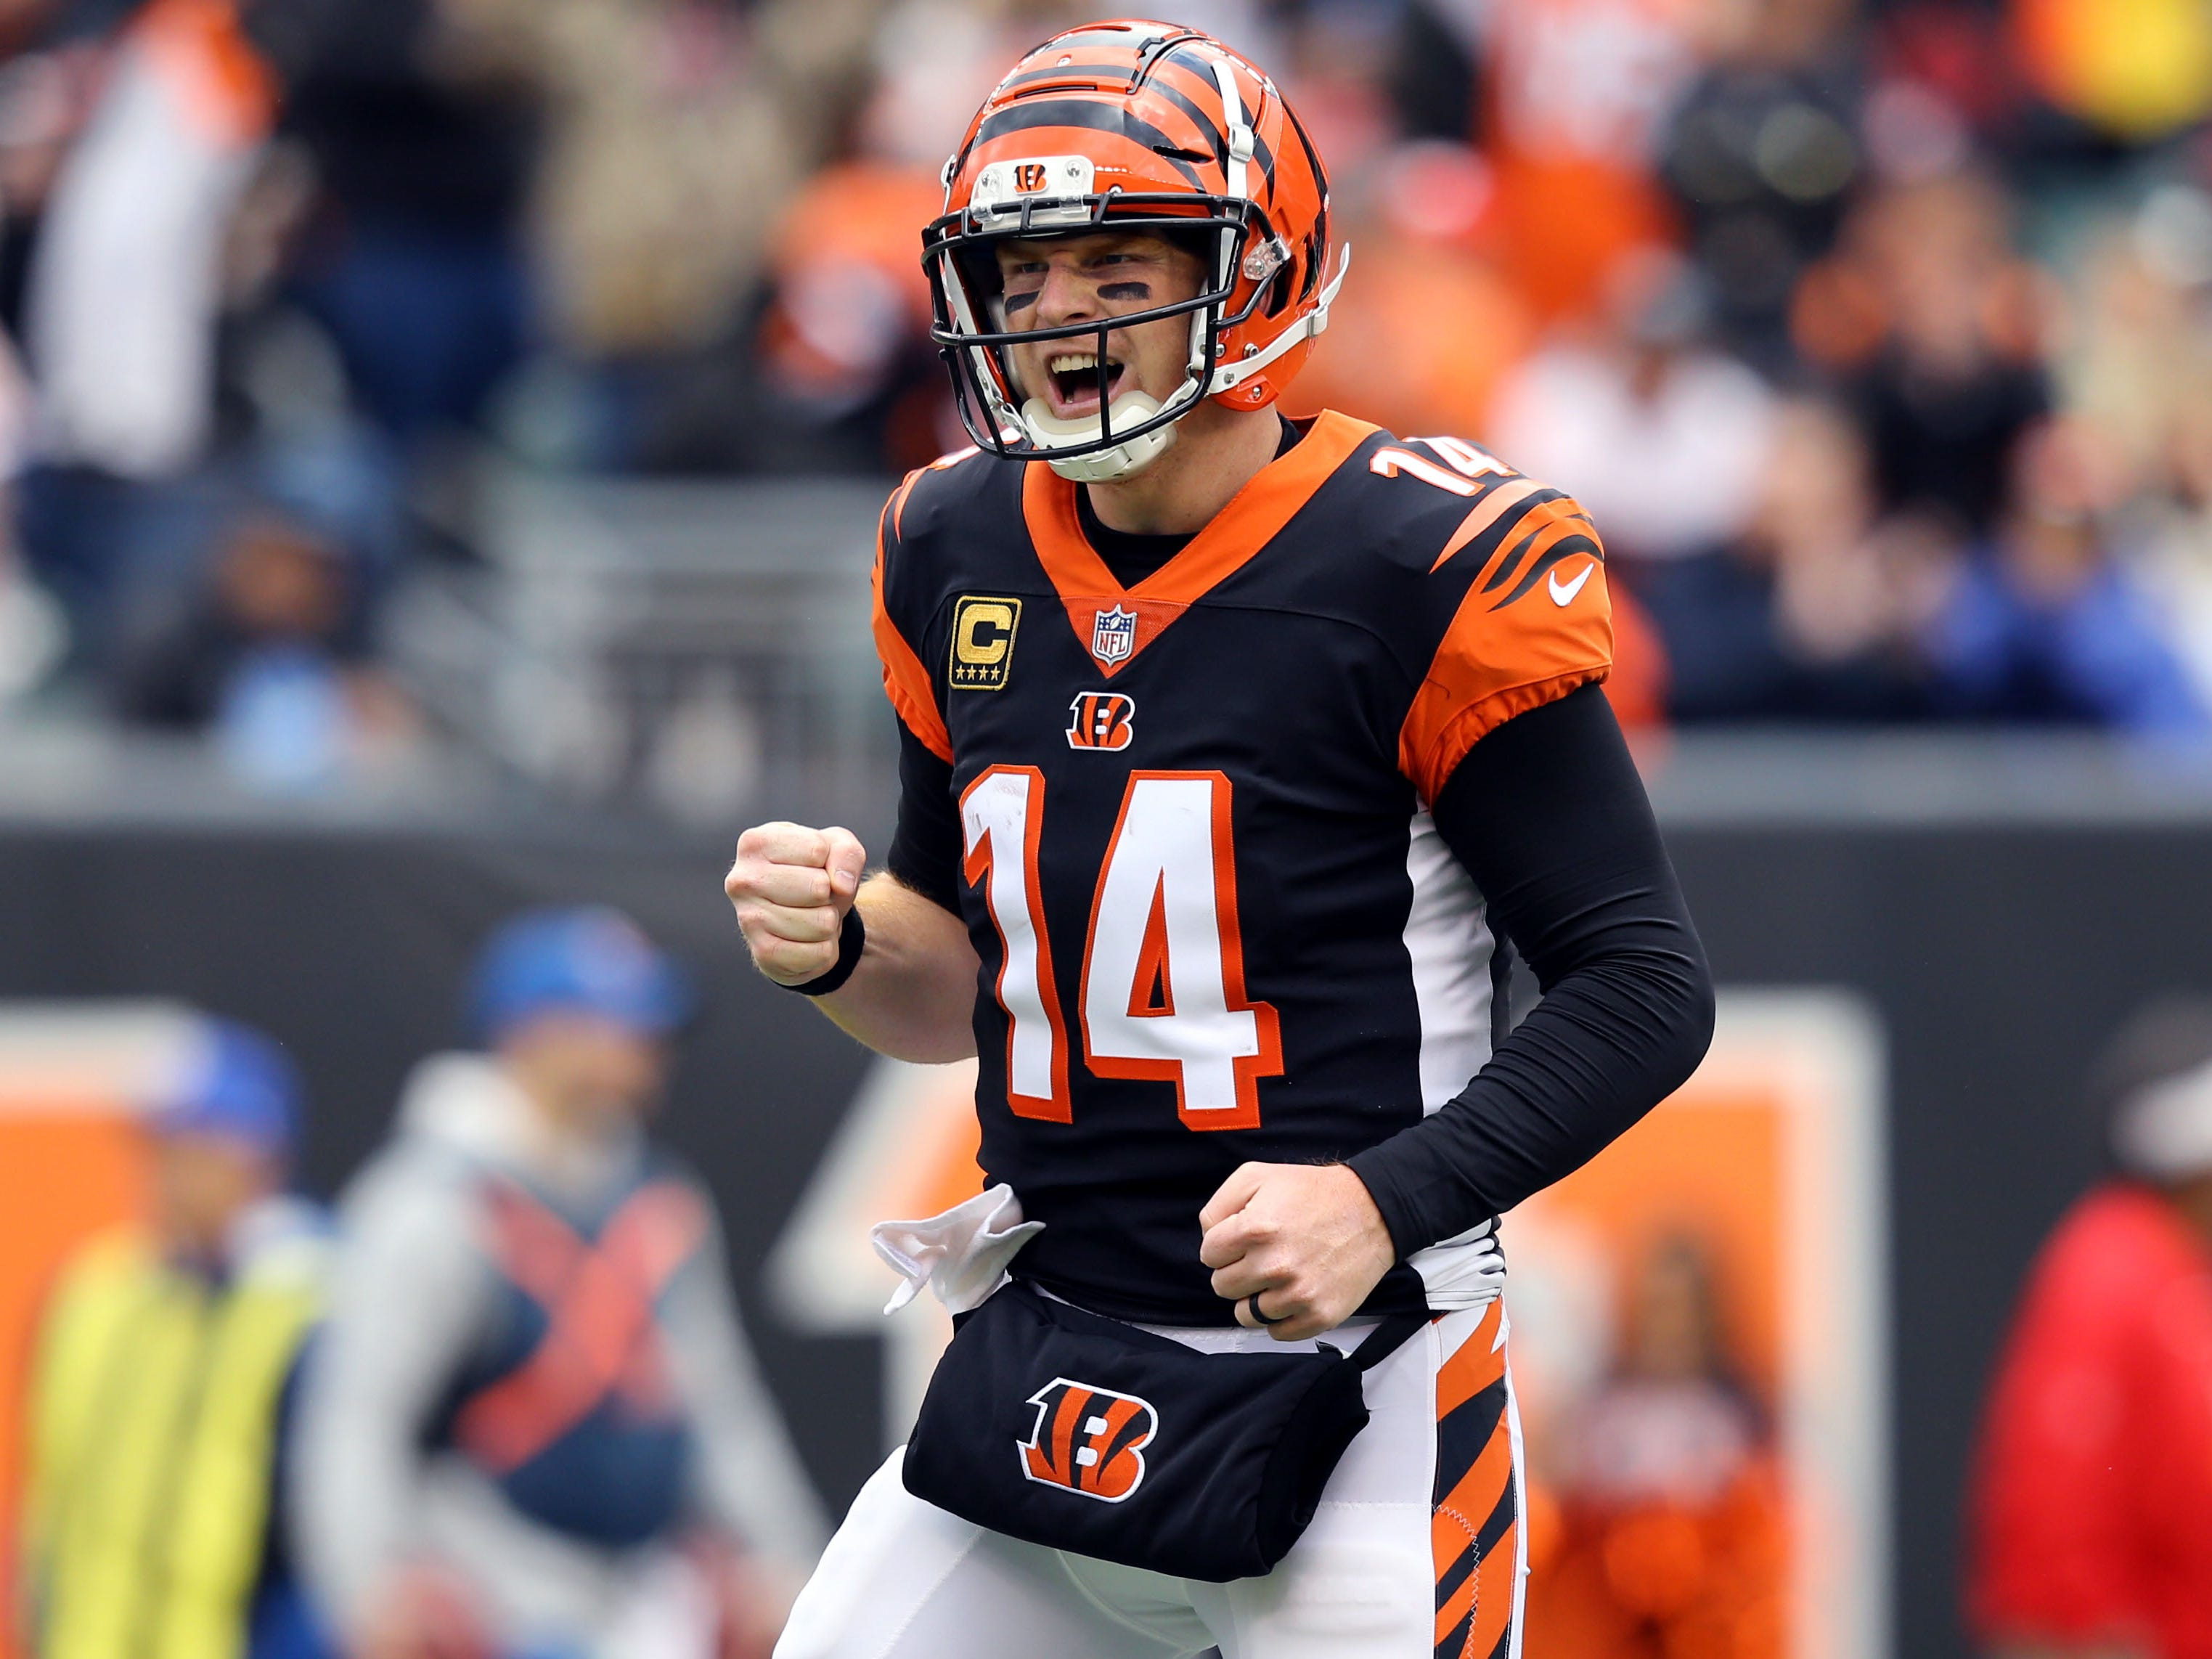 12. Bengals (12): Treat — as they enjoy week off, they'll watch Ravens and Steelers beat up on each other — and Baltimore win would put Cincy back in first.